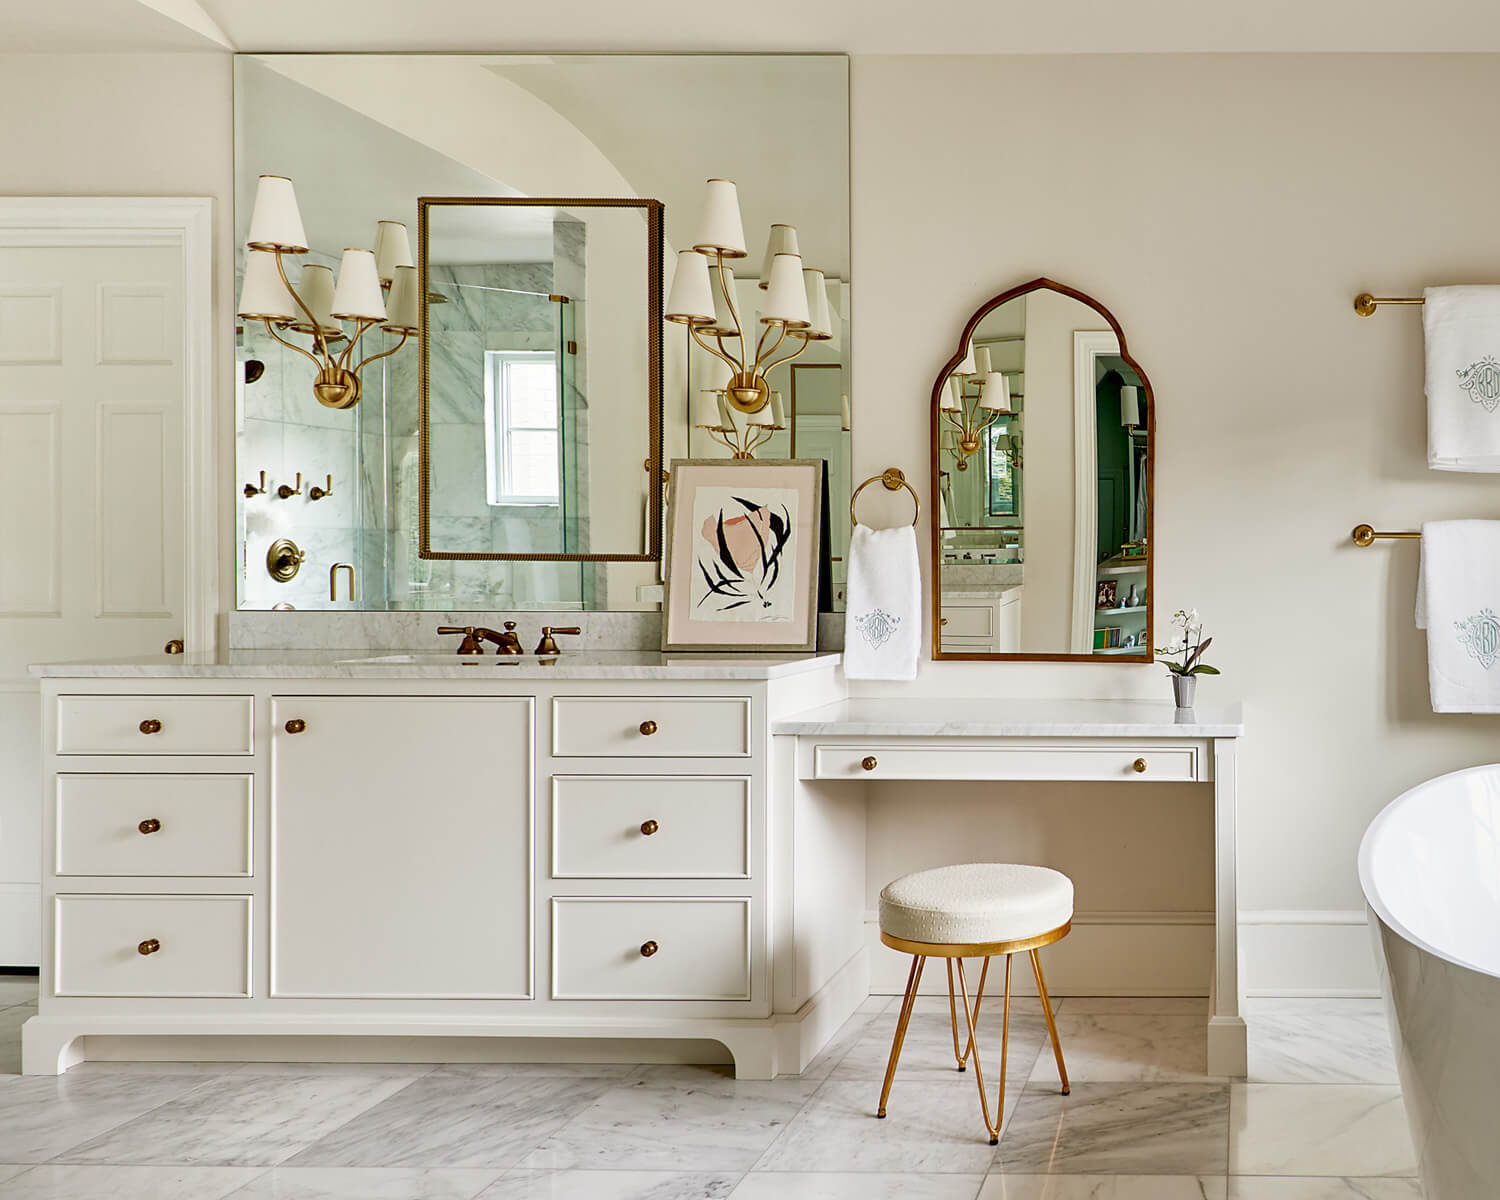 Bathroom remodel using custom white cabinetry by Bistany Design